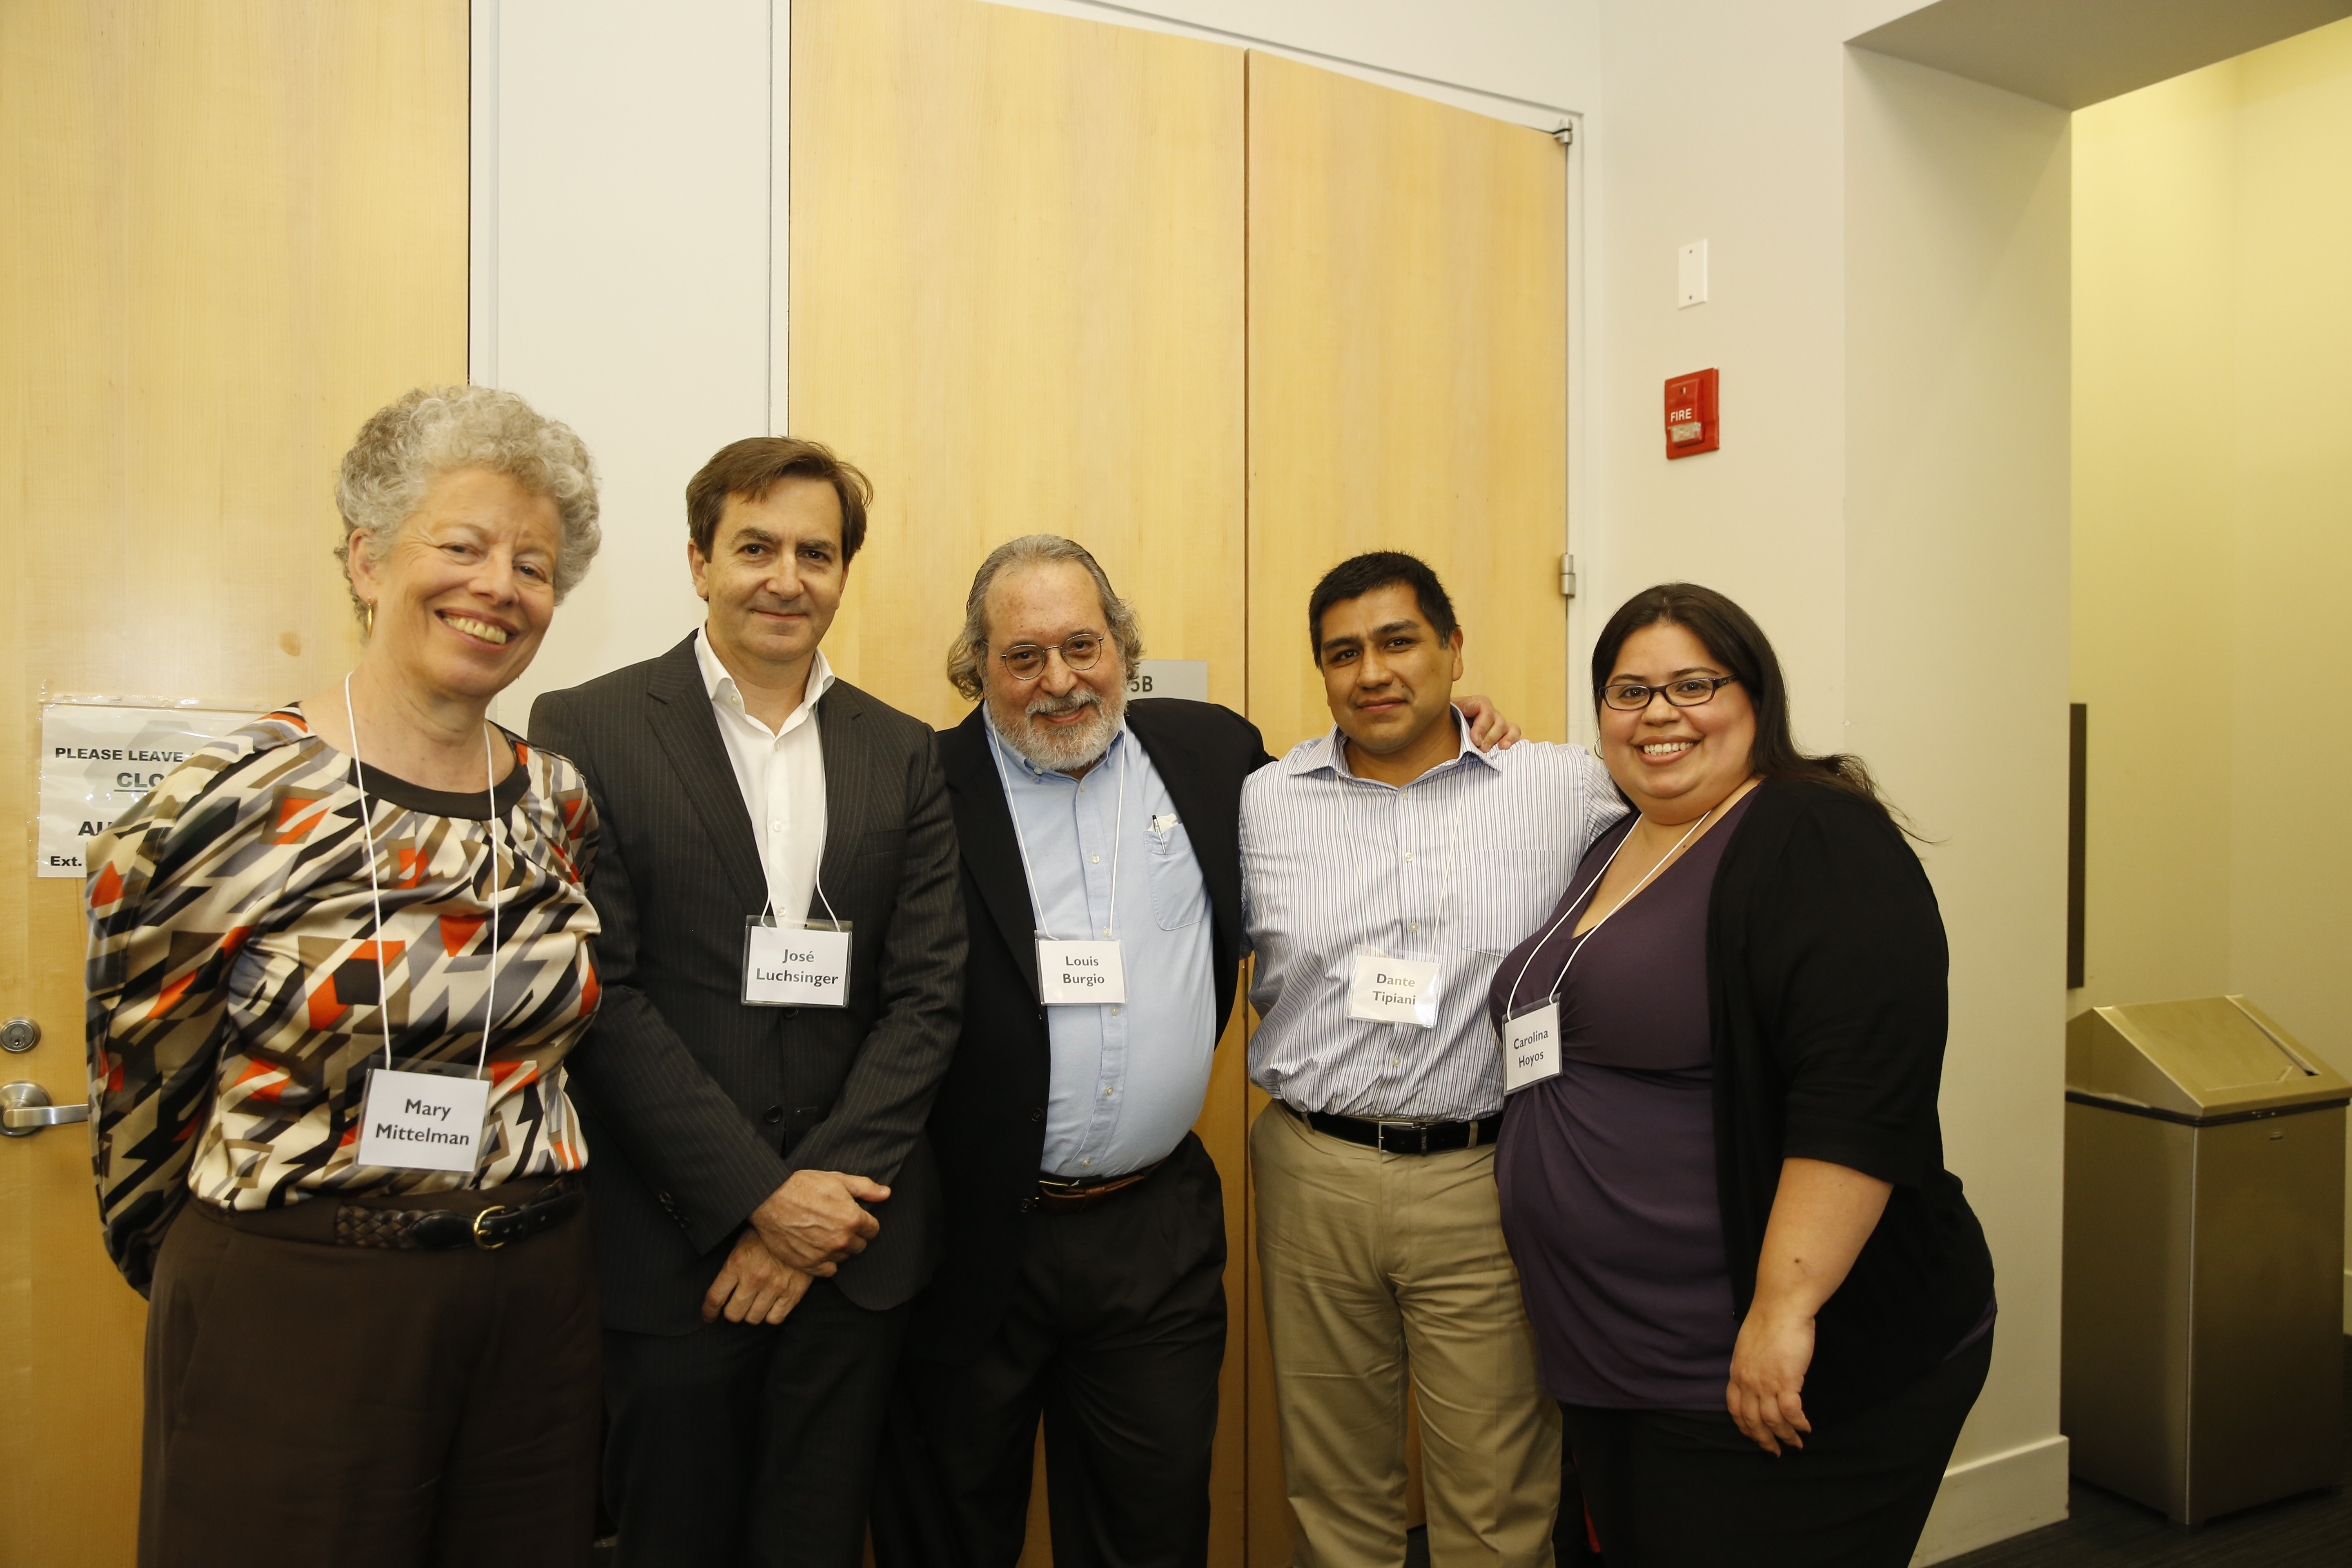 """Presenters on """"An Academic-Community Partnership Supporting Dementia Caregivers"""": Drs. Mary Mittelman, José Luchsinger, and Louis Burgio with Dante Tipiani and Carolina Hoyos."""